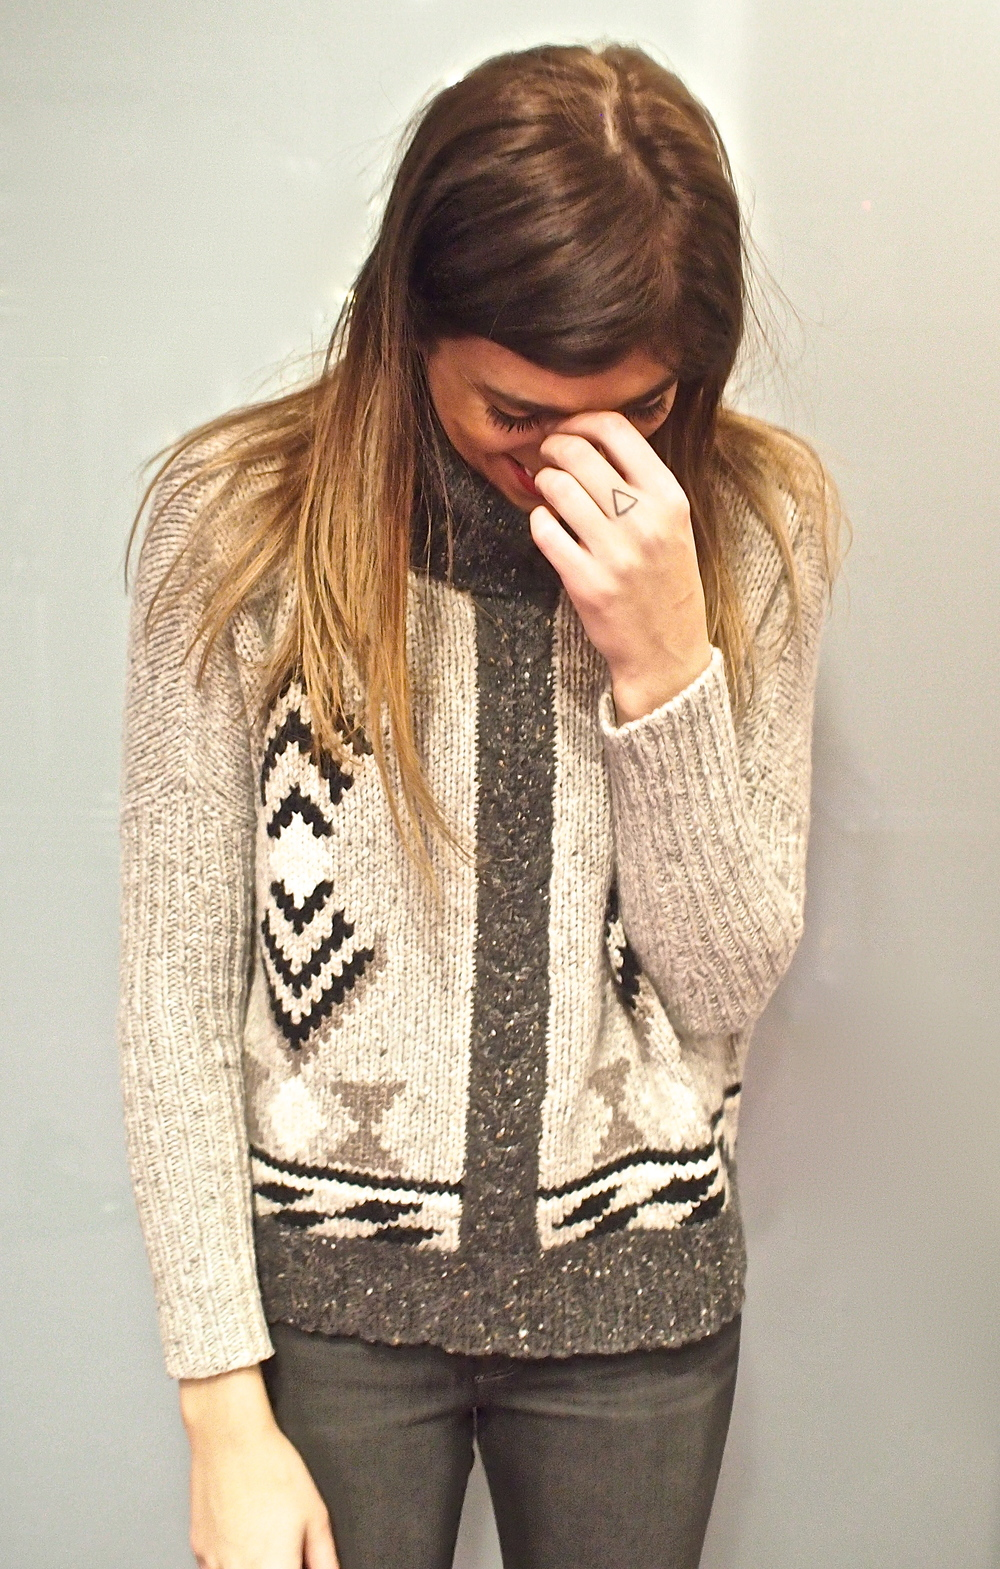 Autumn Cashmere - Southwest Sweater $525, JBrand Skinny Jean $269